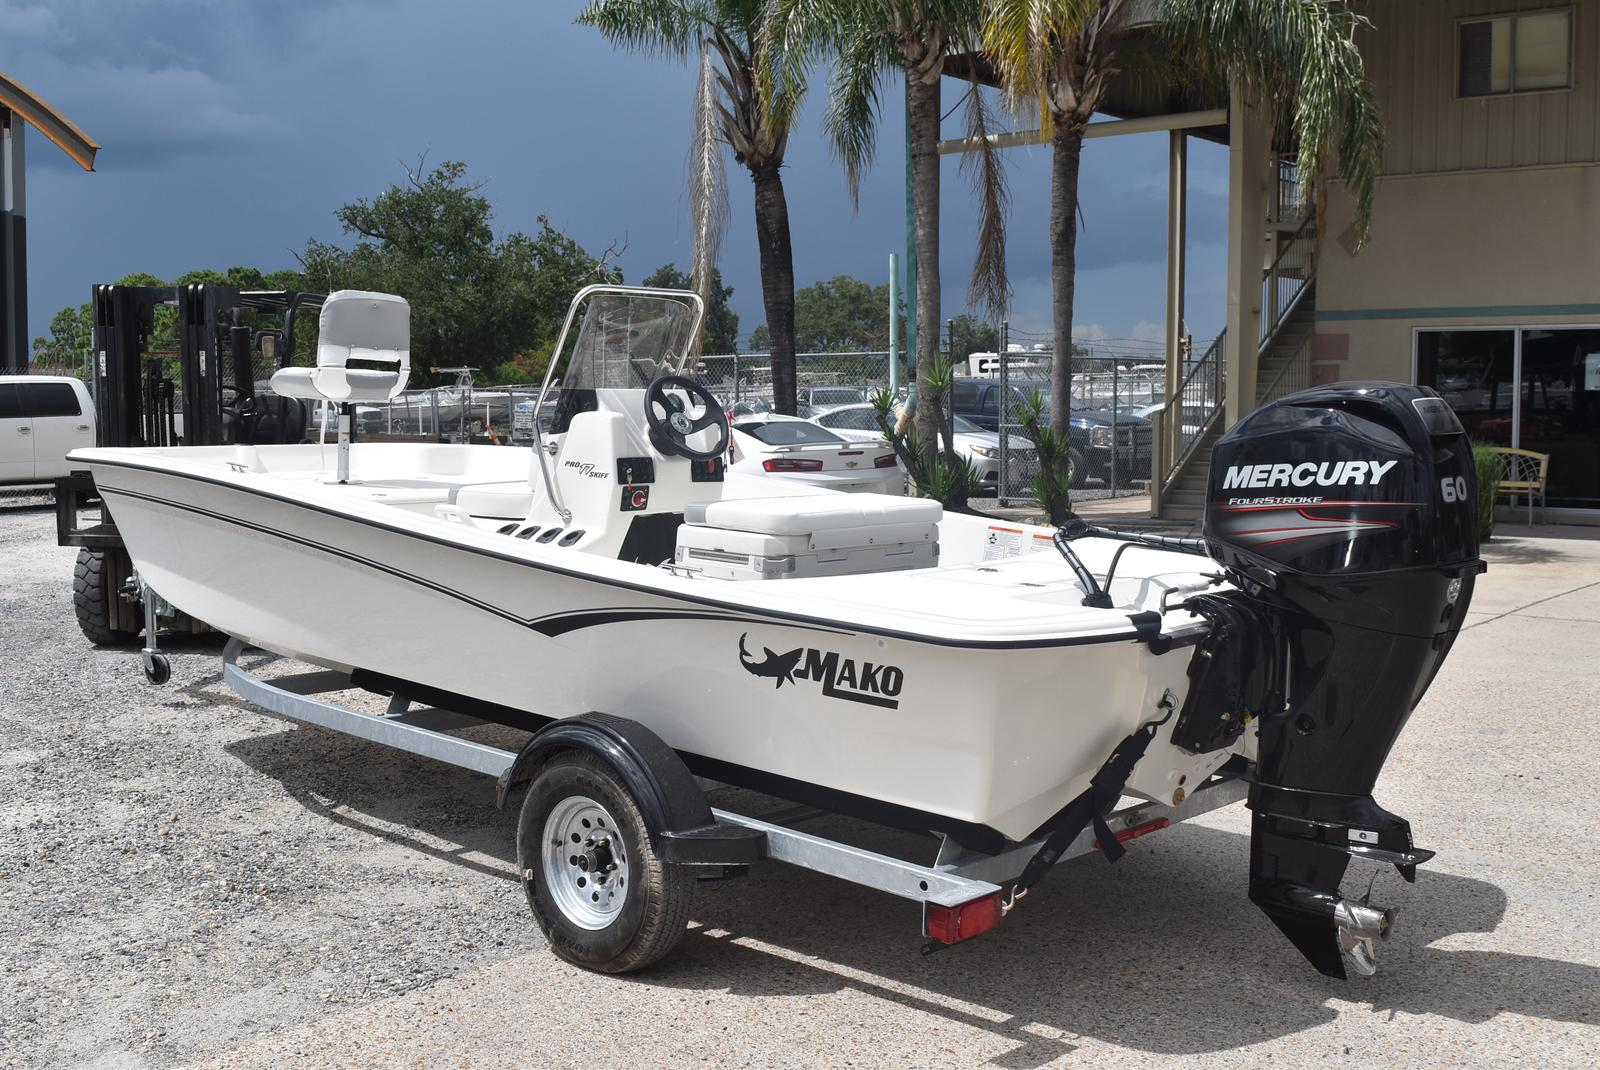 2020 Mako boat for sale, model of the boat is Pro Skiff 17, 75 ELPT & Image # 185 of 702